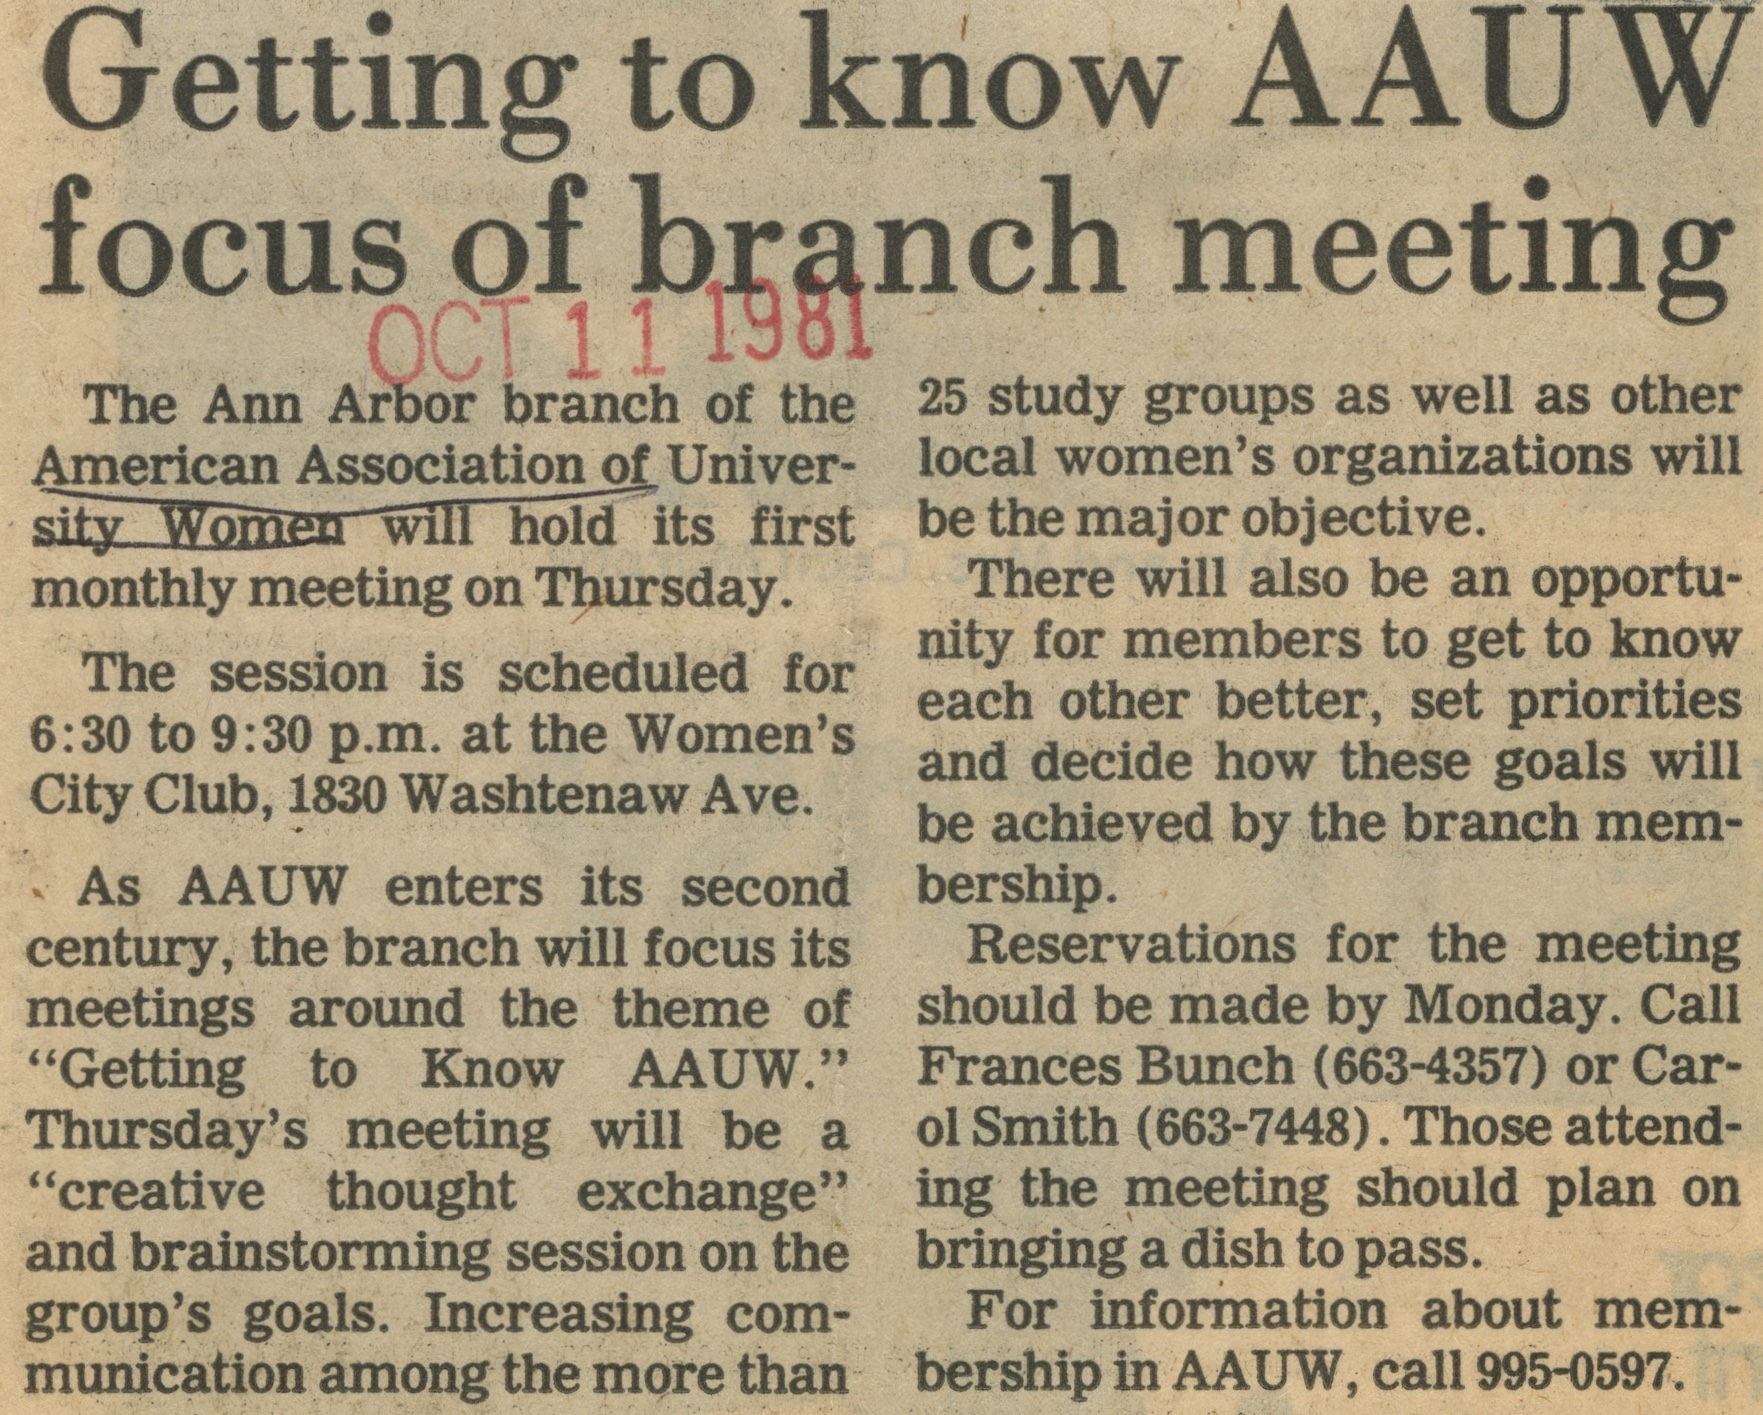 Getting to Know AAUW Focus of Branch Meeting image